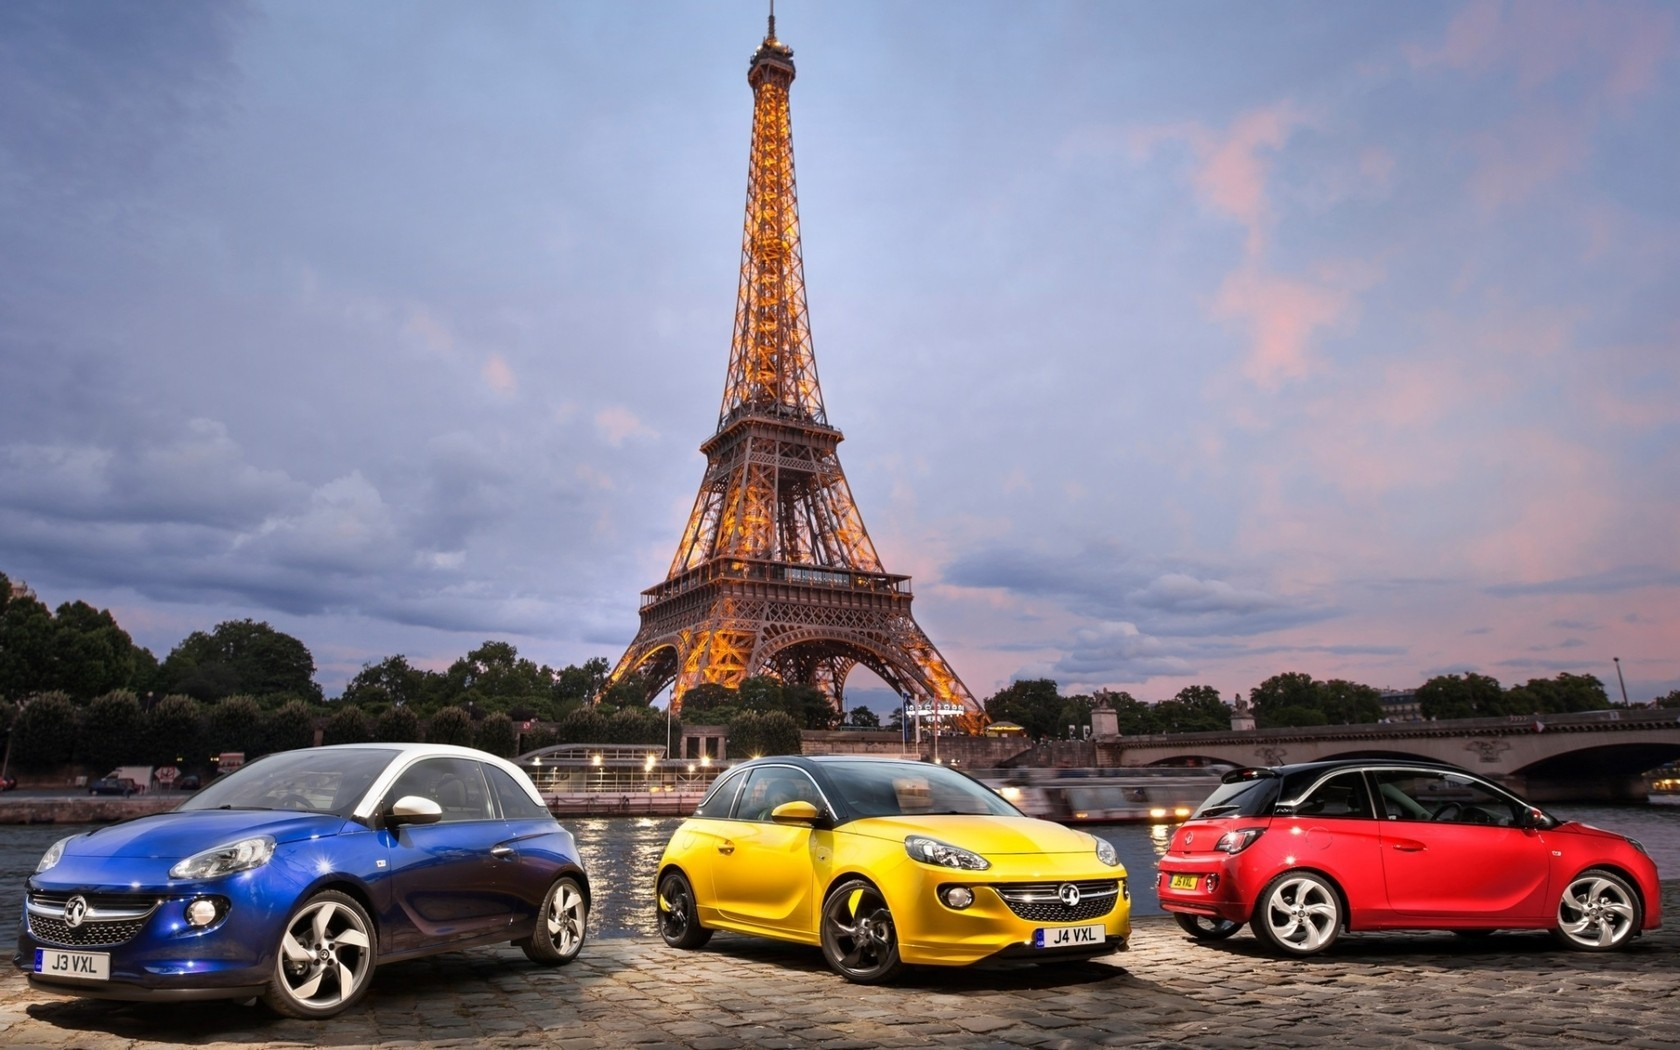 Three cars near the Eiffel tower in Paris